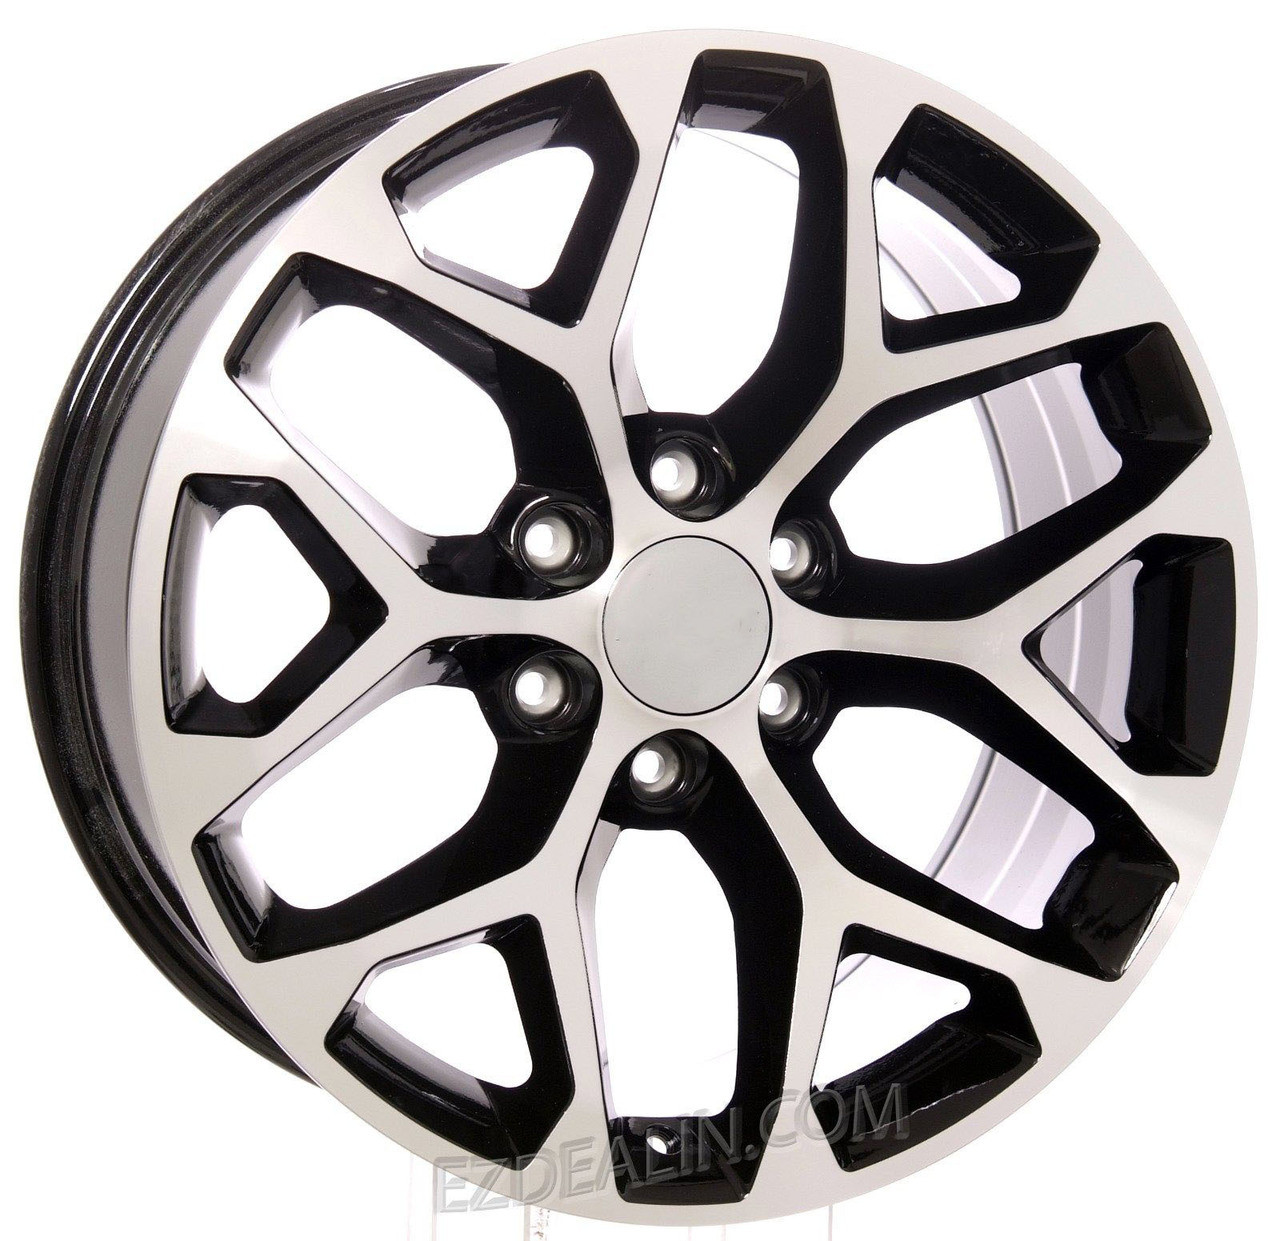 "Chevy Style Black and Machined Snowflake 20"" Wheels"